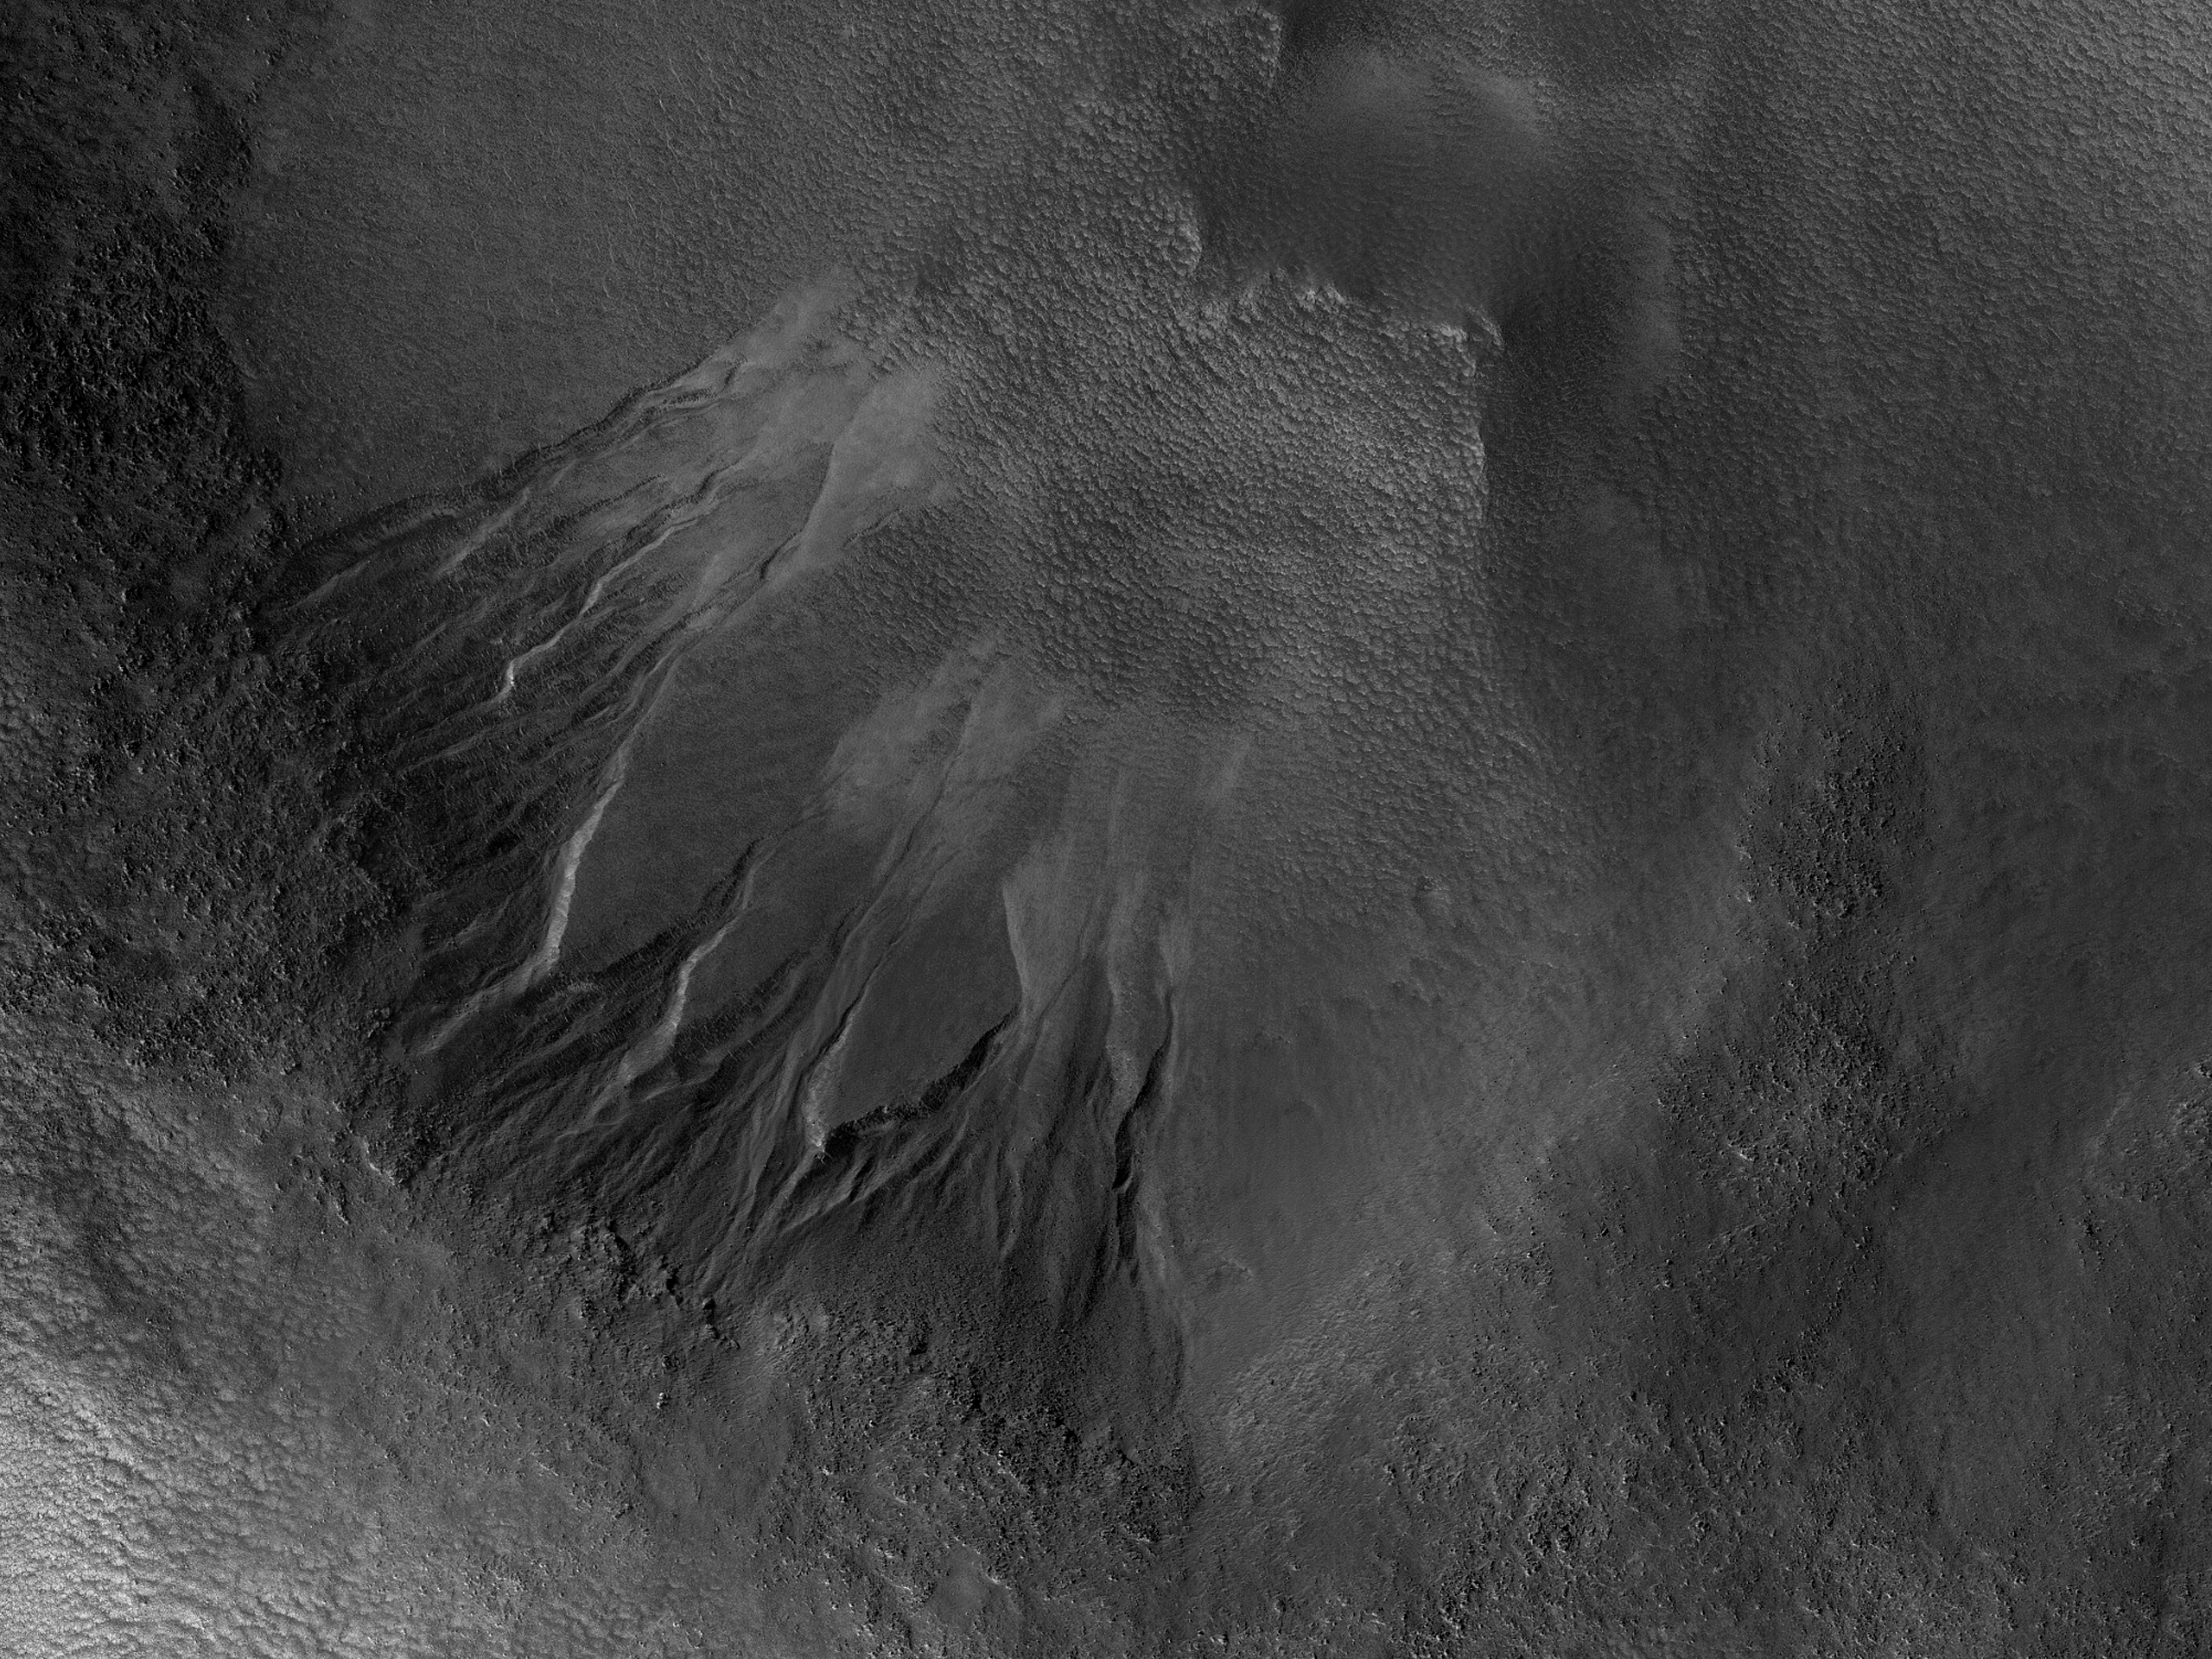 Gullies in a Depression in Charitum Montes